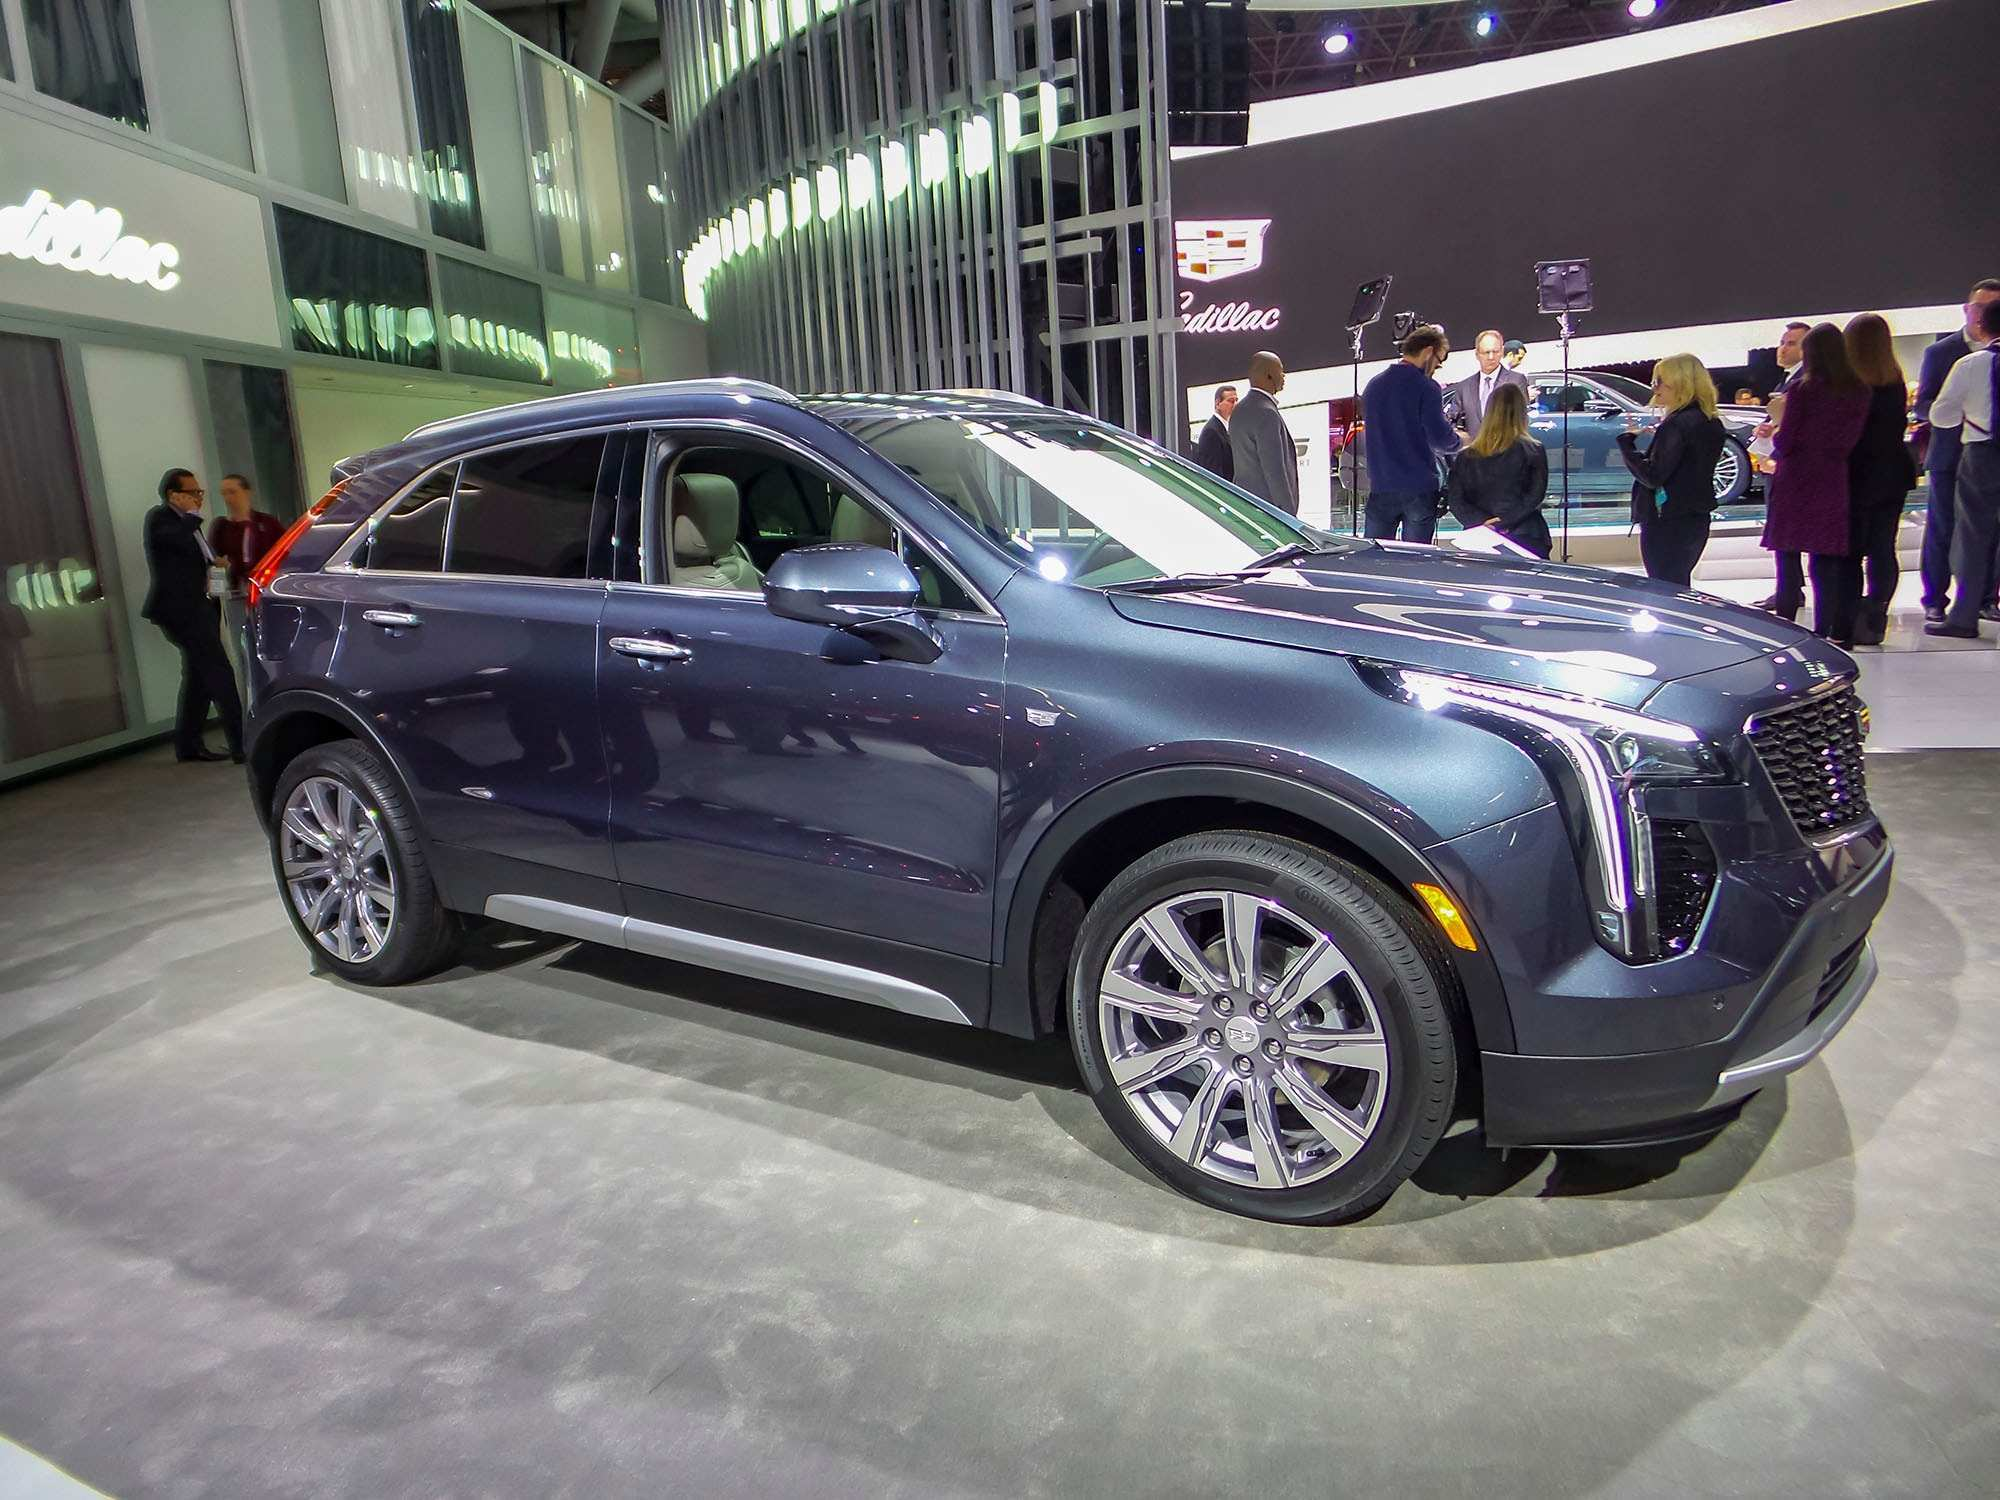 25 All New 2019 Cadillac St4 Release Date